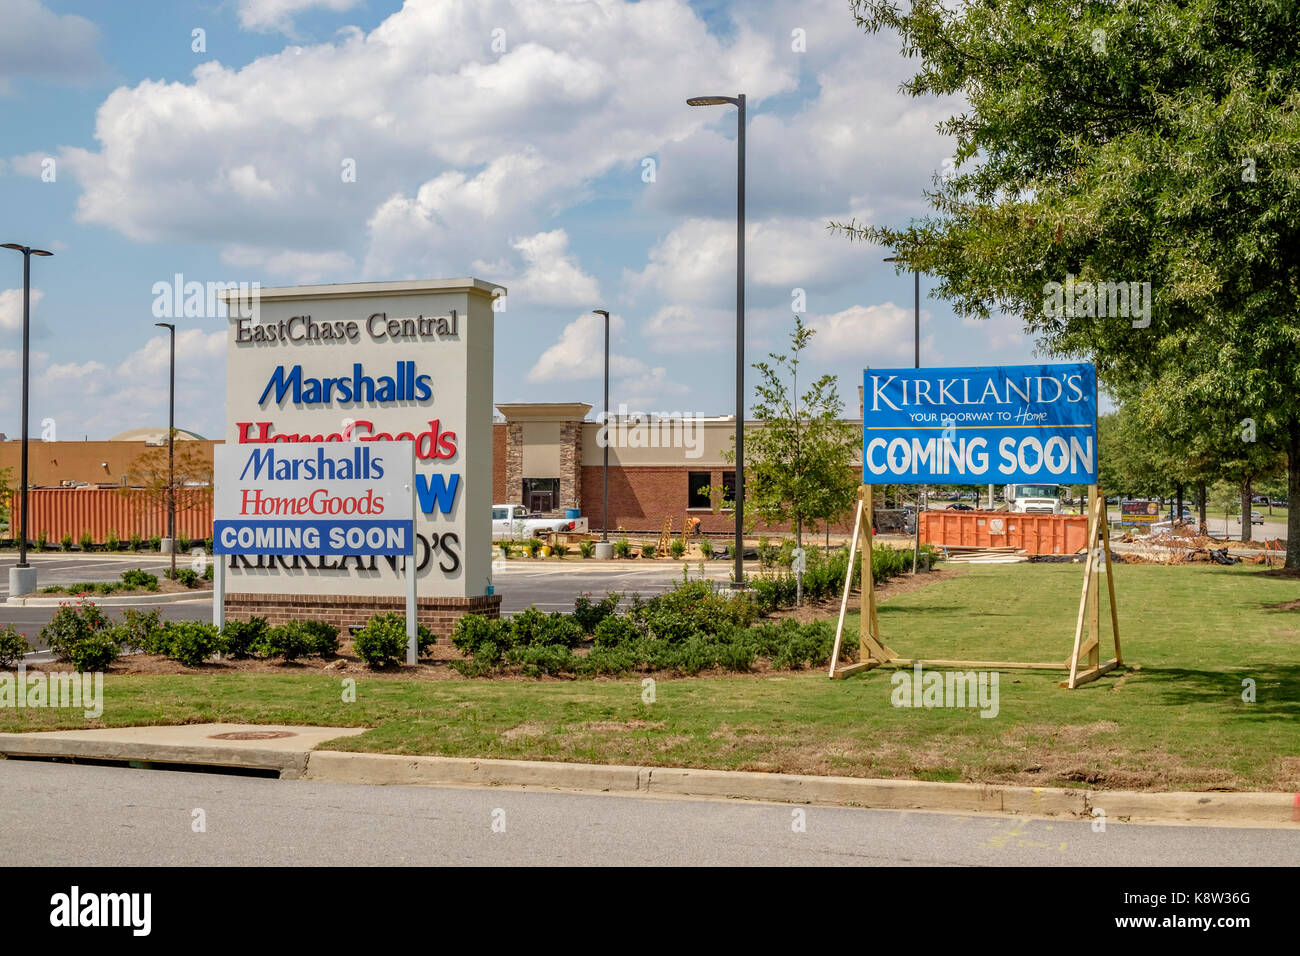 Coming Soon Signs For The New Eastchase Center Shopping Center Montgomery Alabama Usa For Kirklands Marshalls Home Goods And Five Below Stores